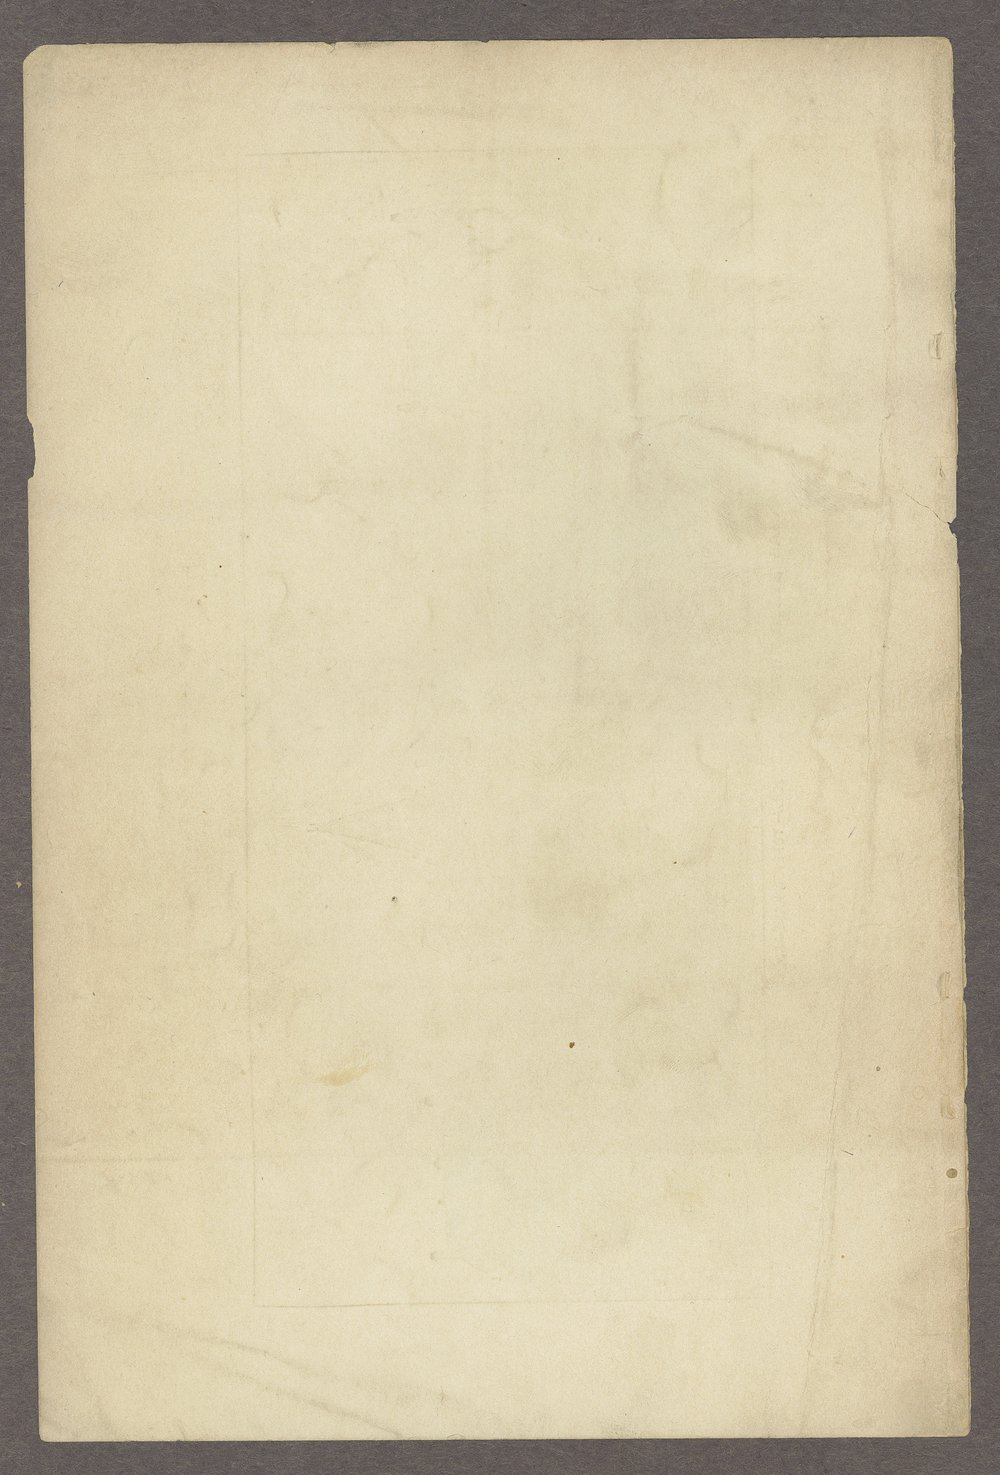 Biennial report of the State Reform School,1898 - 14